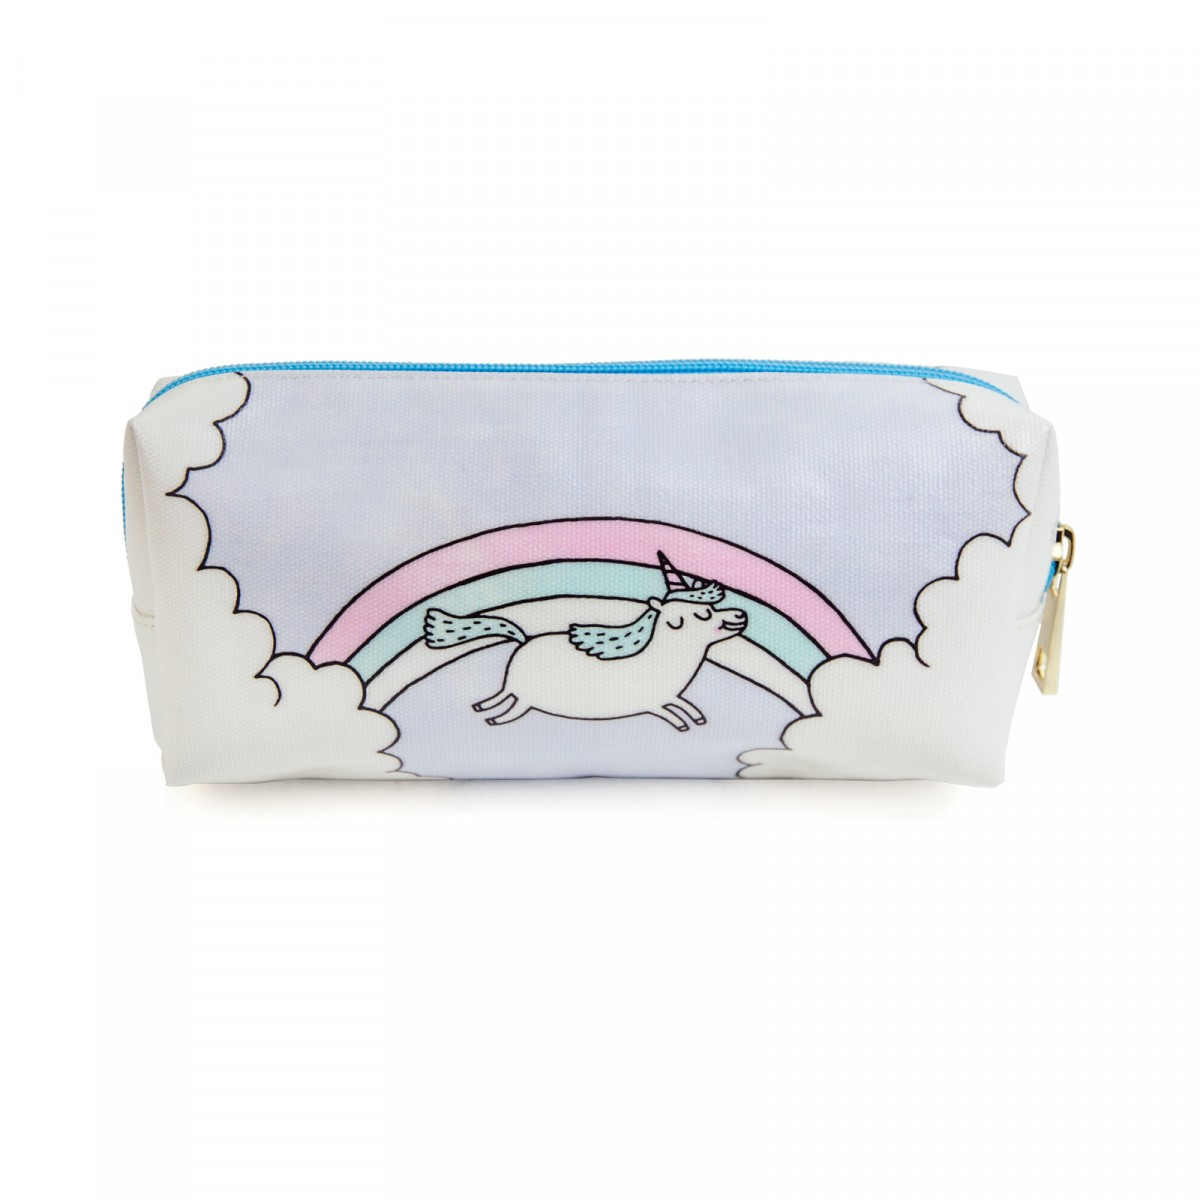 large-unicorn-pencil-case_3.jpg